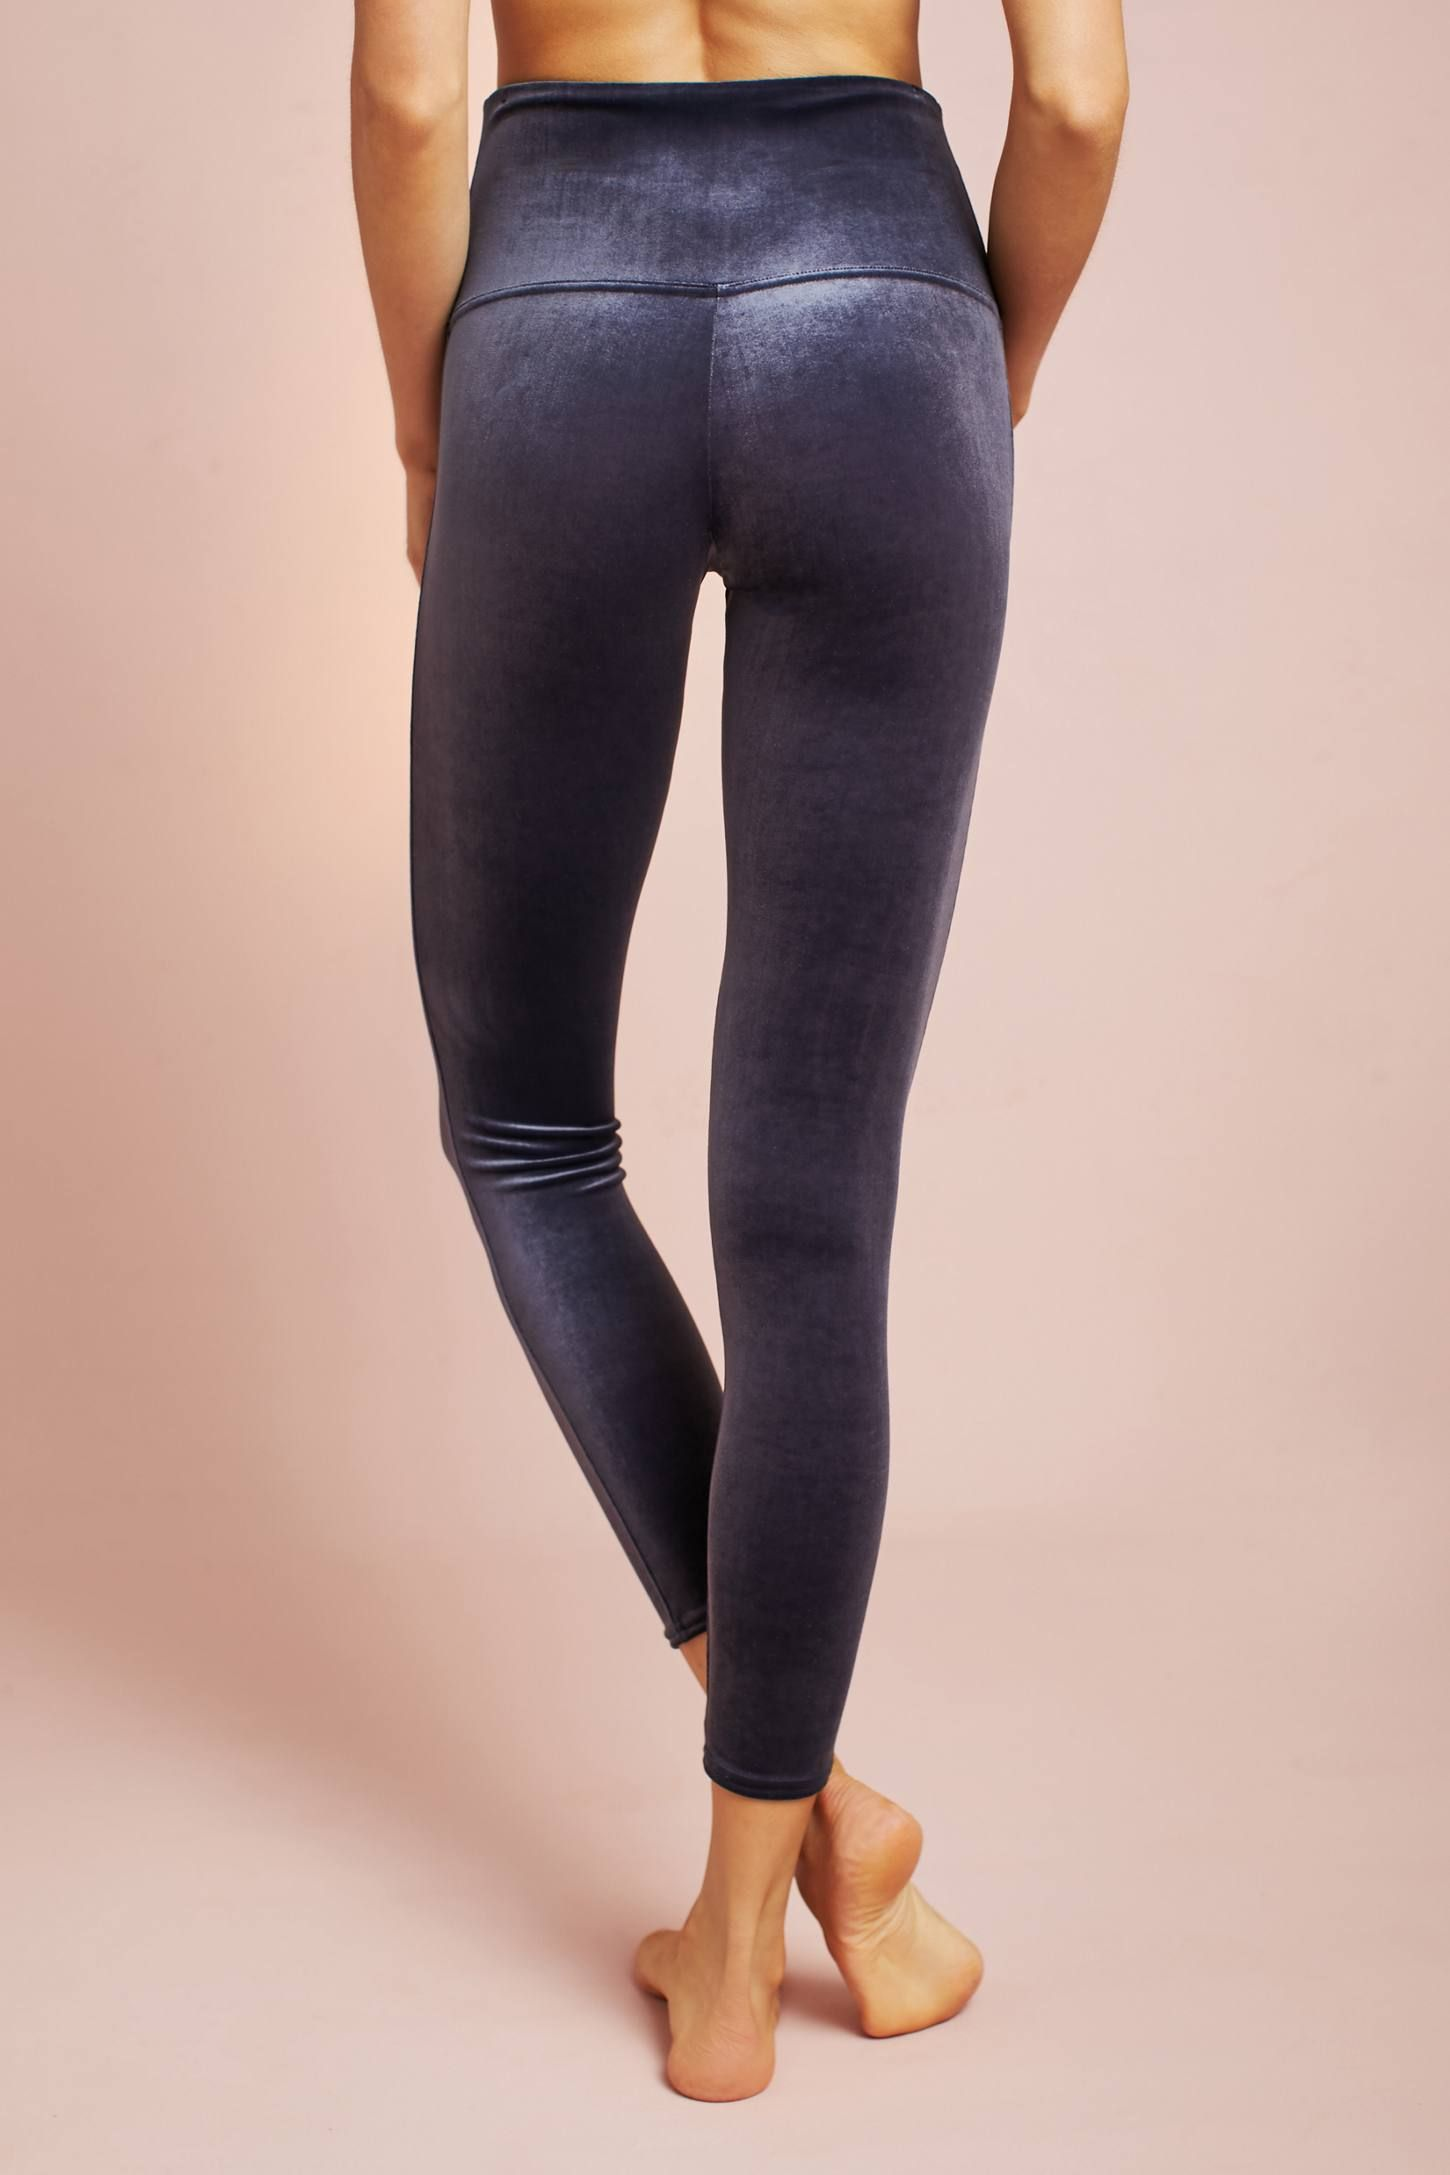 0fe5710d2160e Shop the Spanx Velvet Leggings and more Anthropologie at Anthropologie  today. Read customer reviews, discover product details and more.